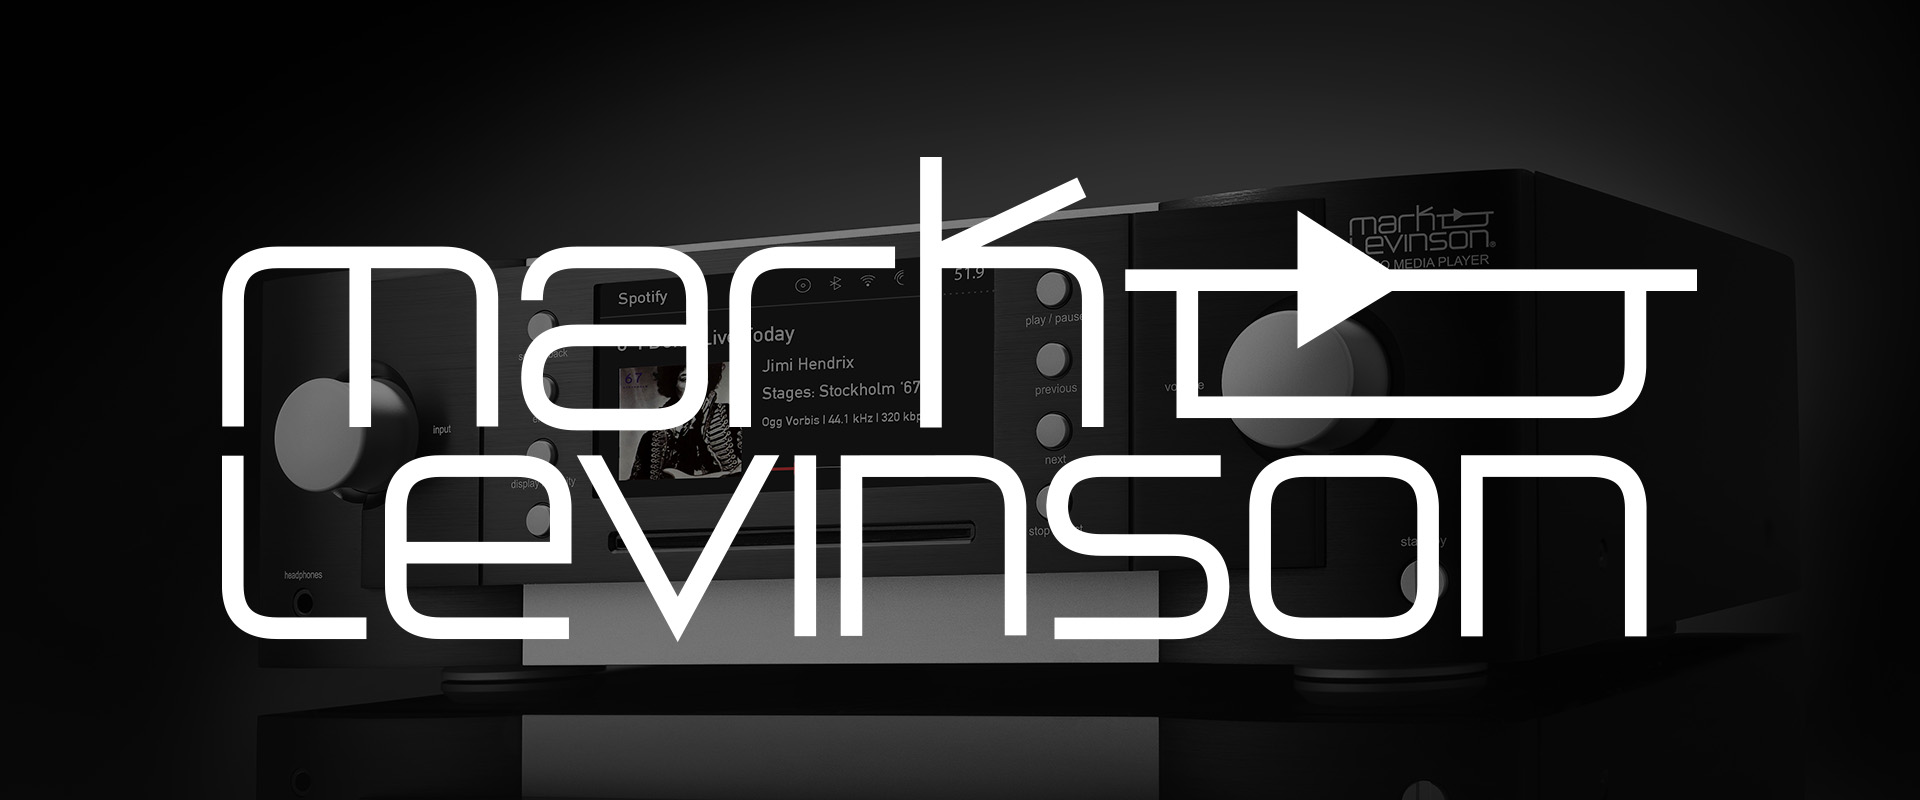 Mark Levinson - Chattelin Audio Systems